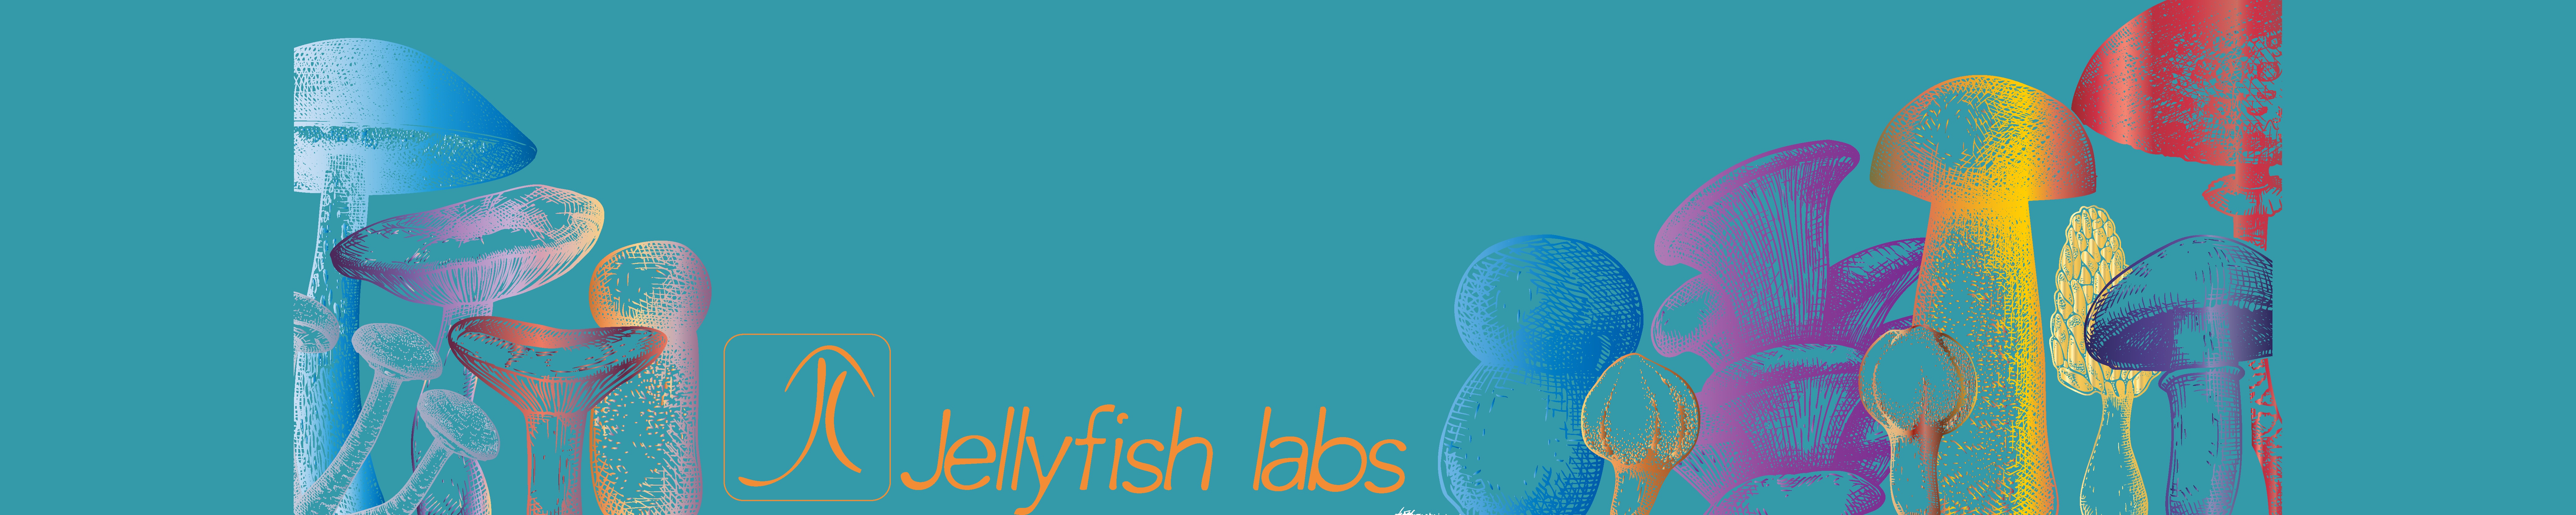 jellyfishlabs Cover